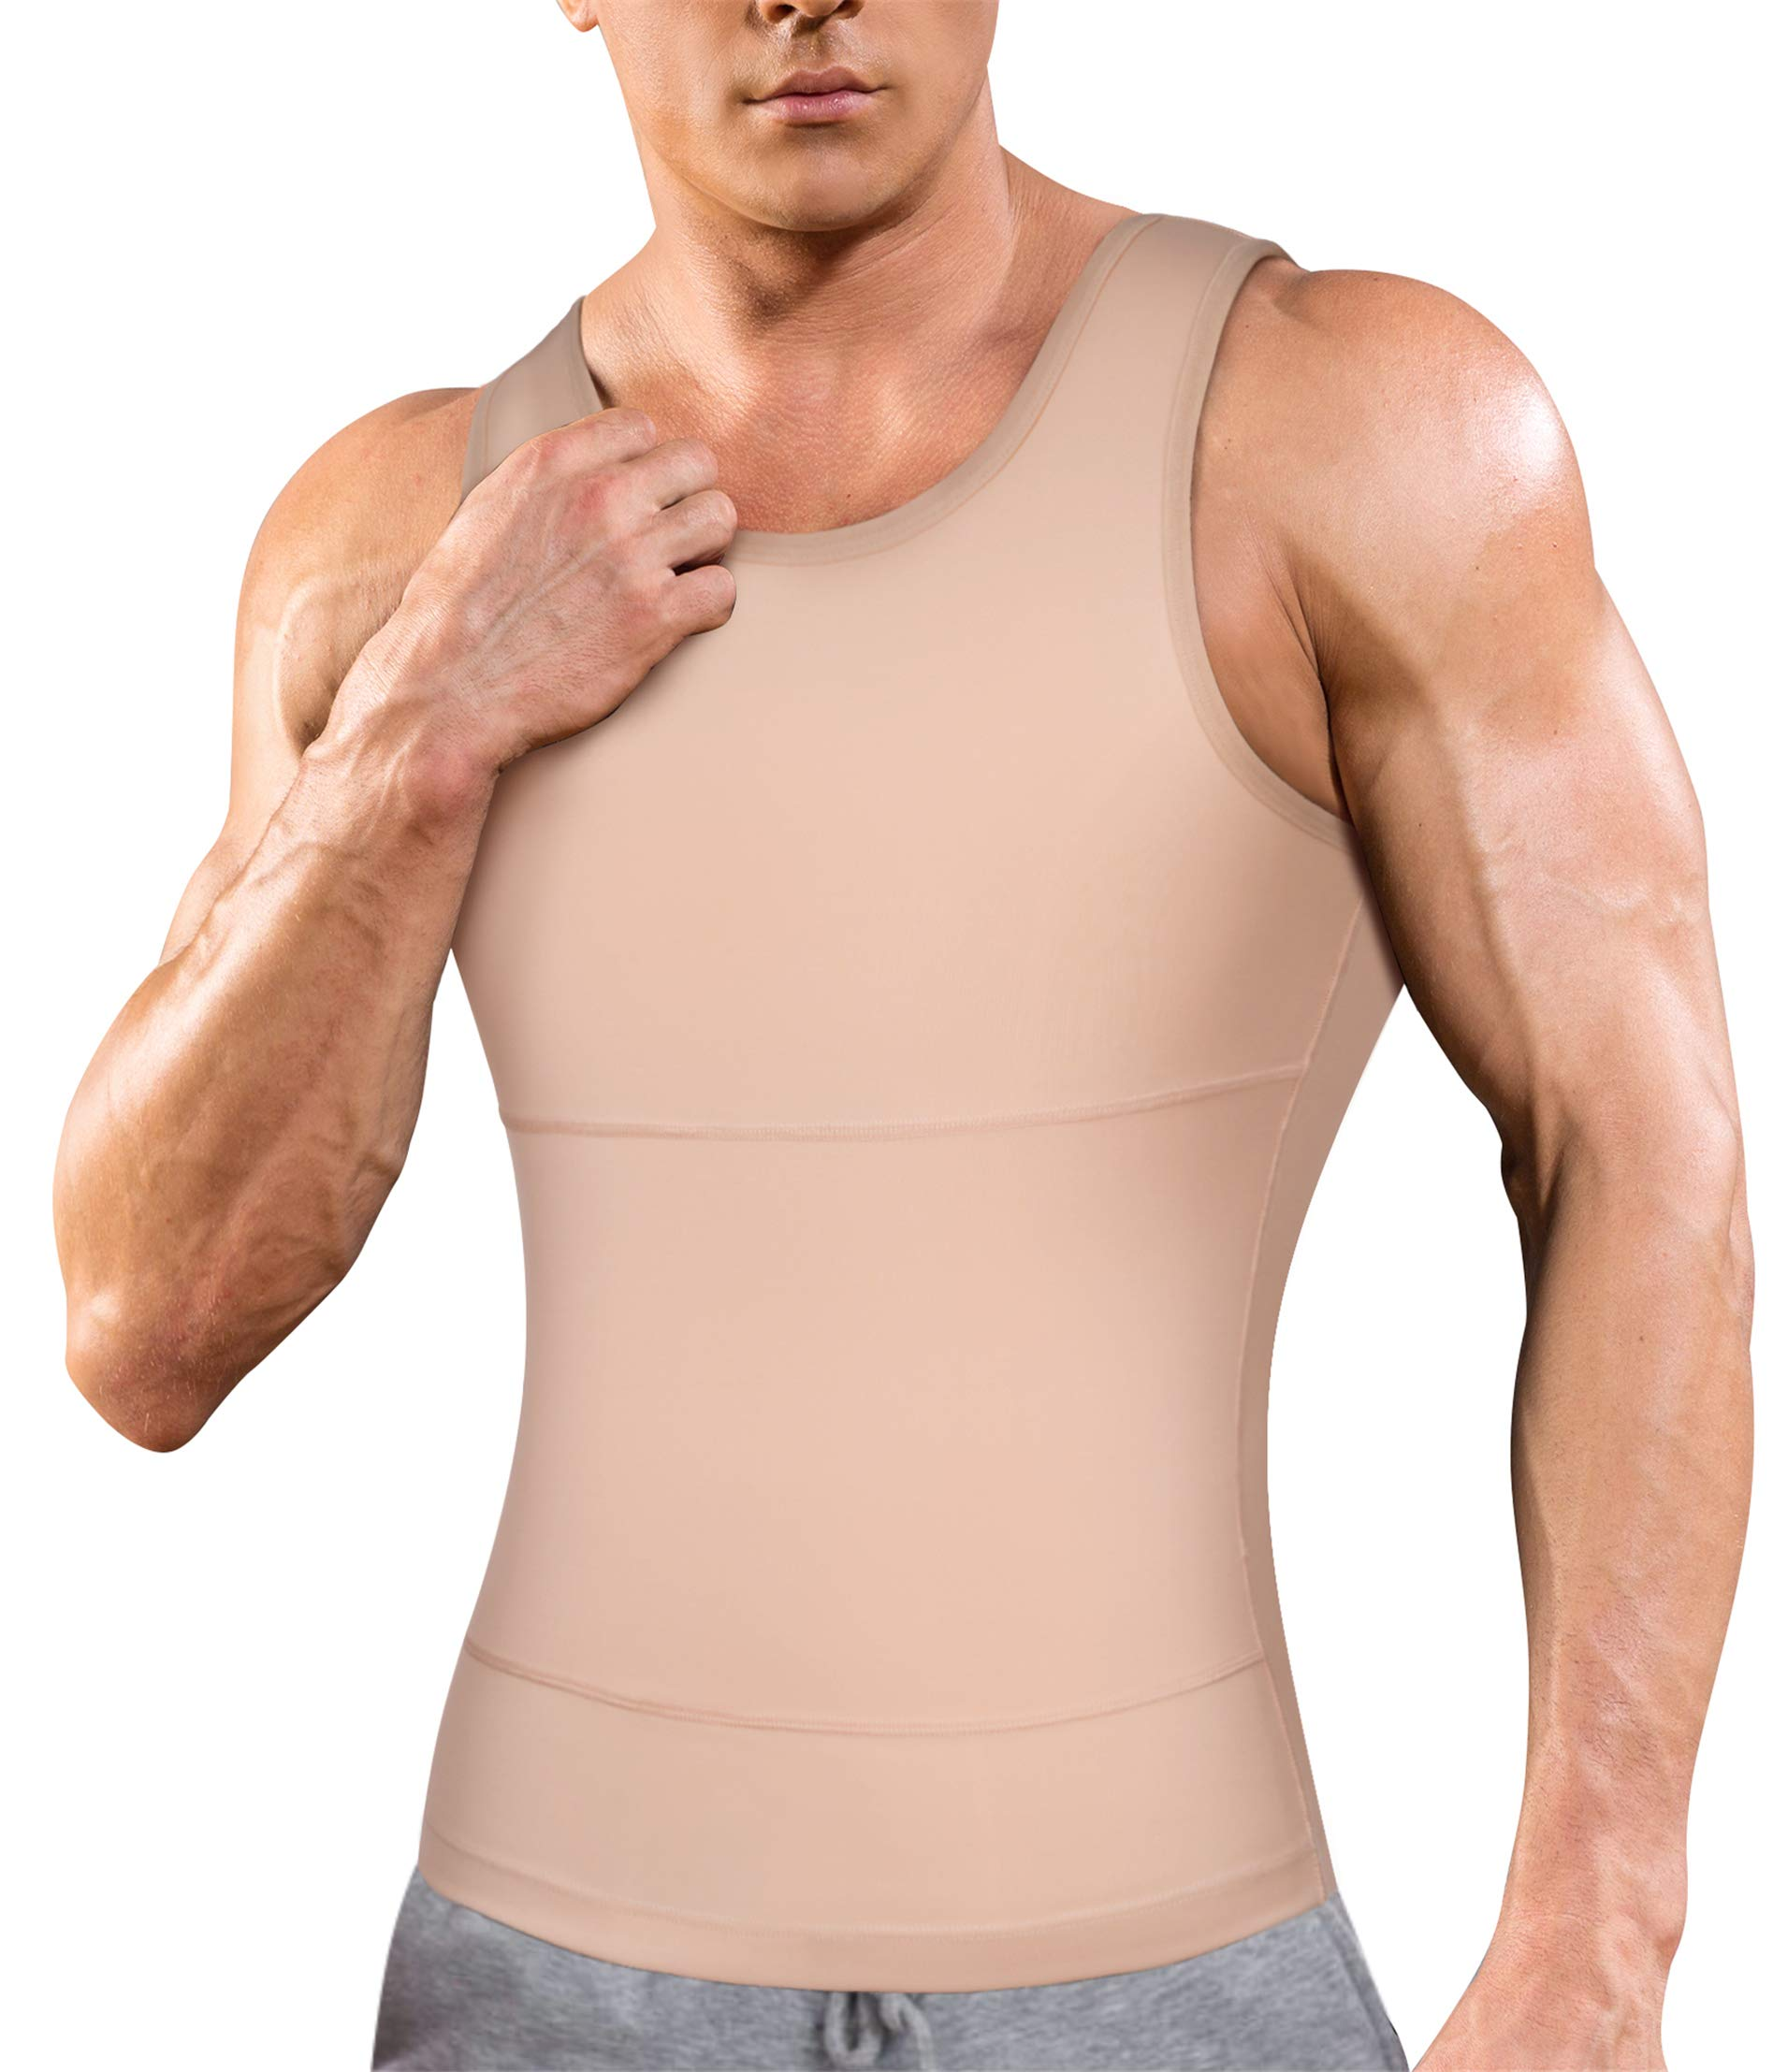 Mens Compression Shirt Slimming Body Shaper Vest Workout Tank Tops Abs Abdomen Undershirts (Beige, L)